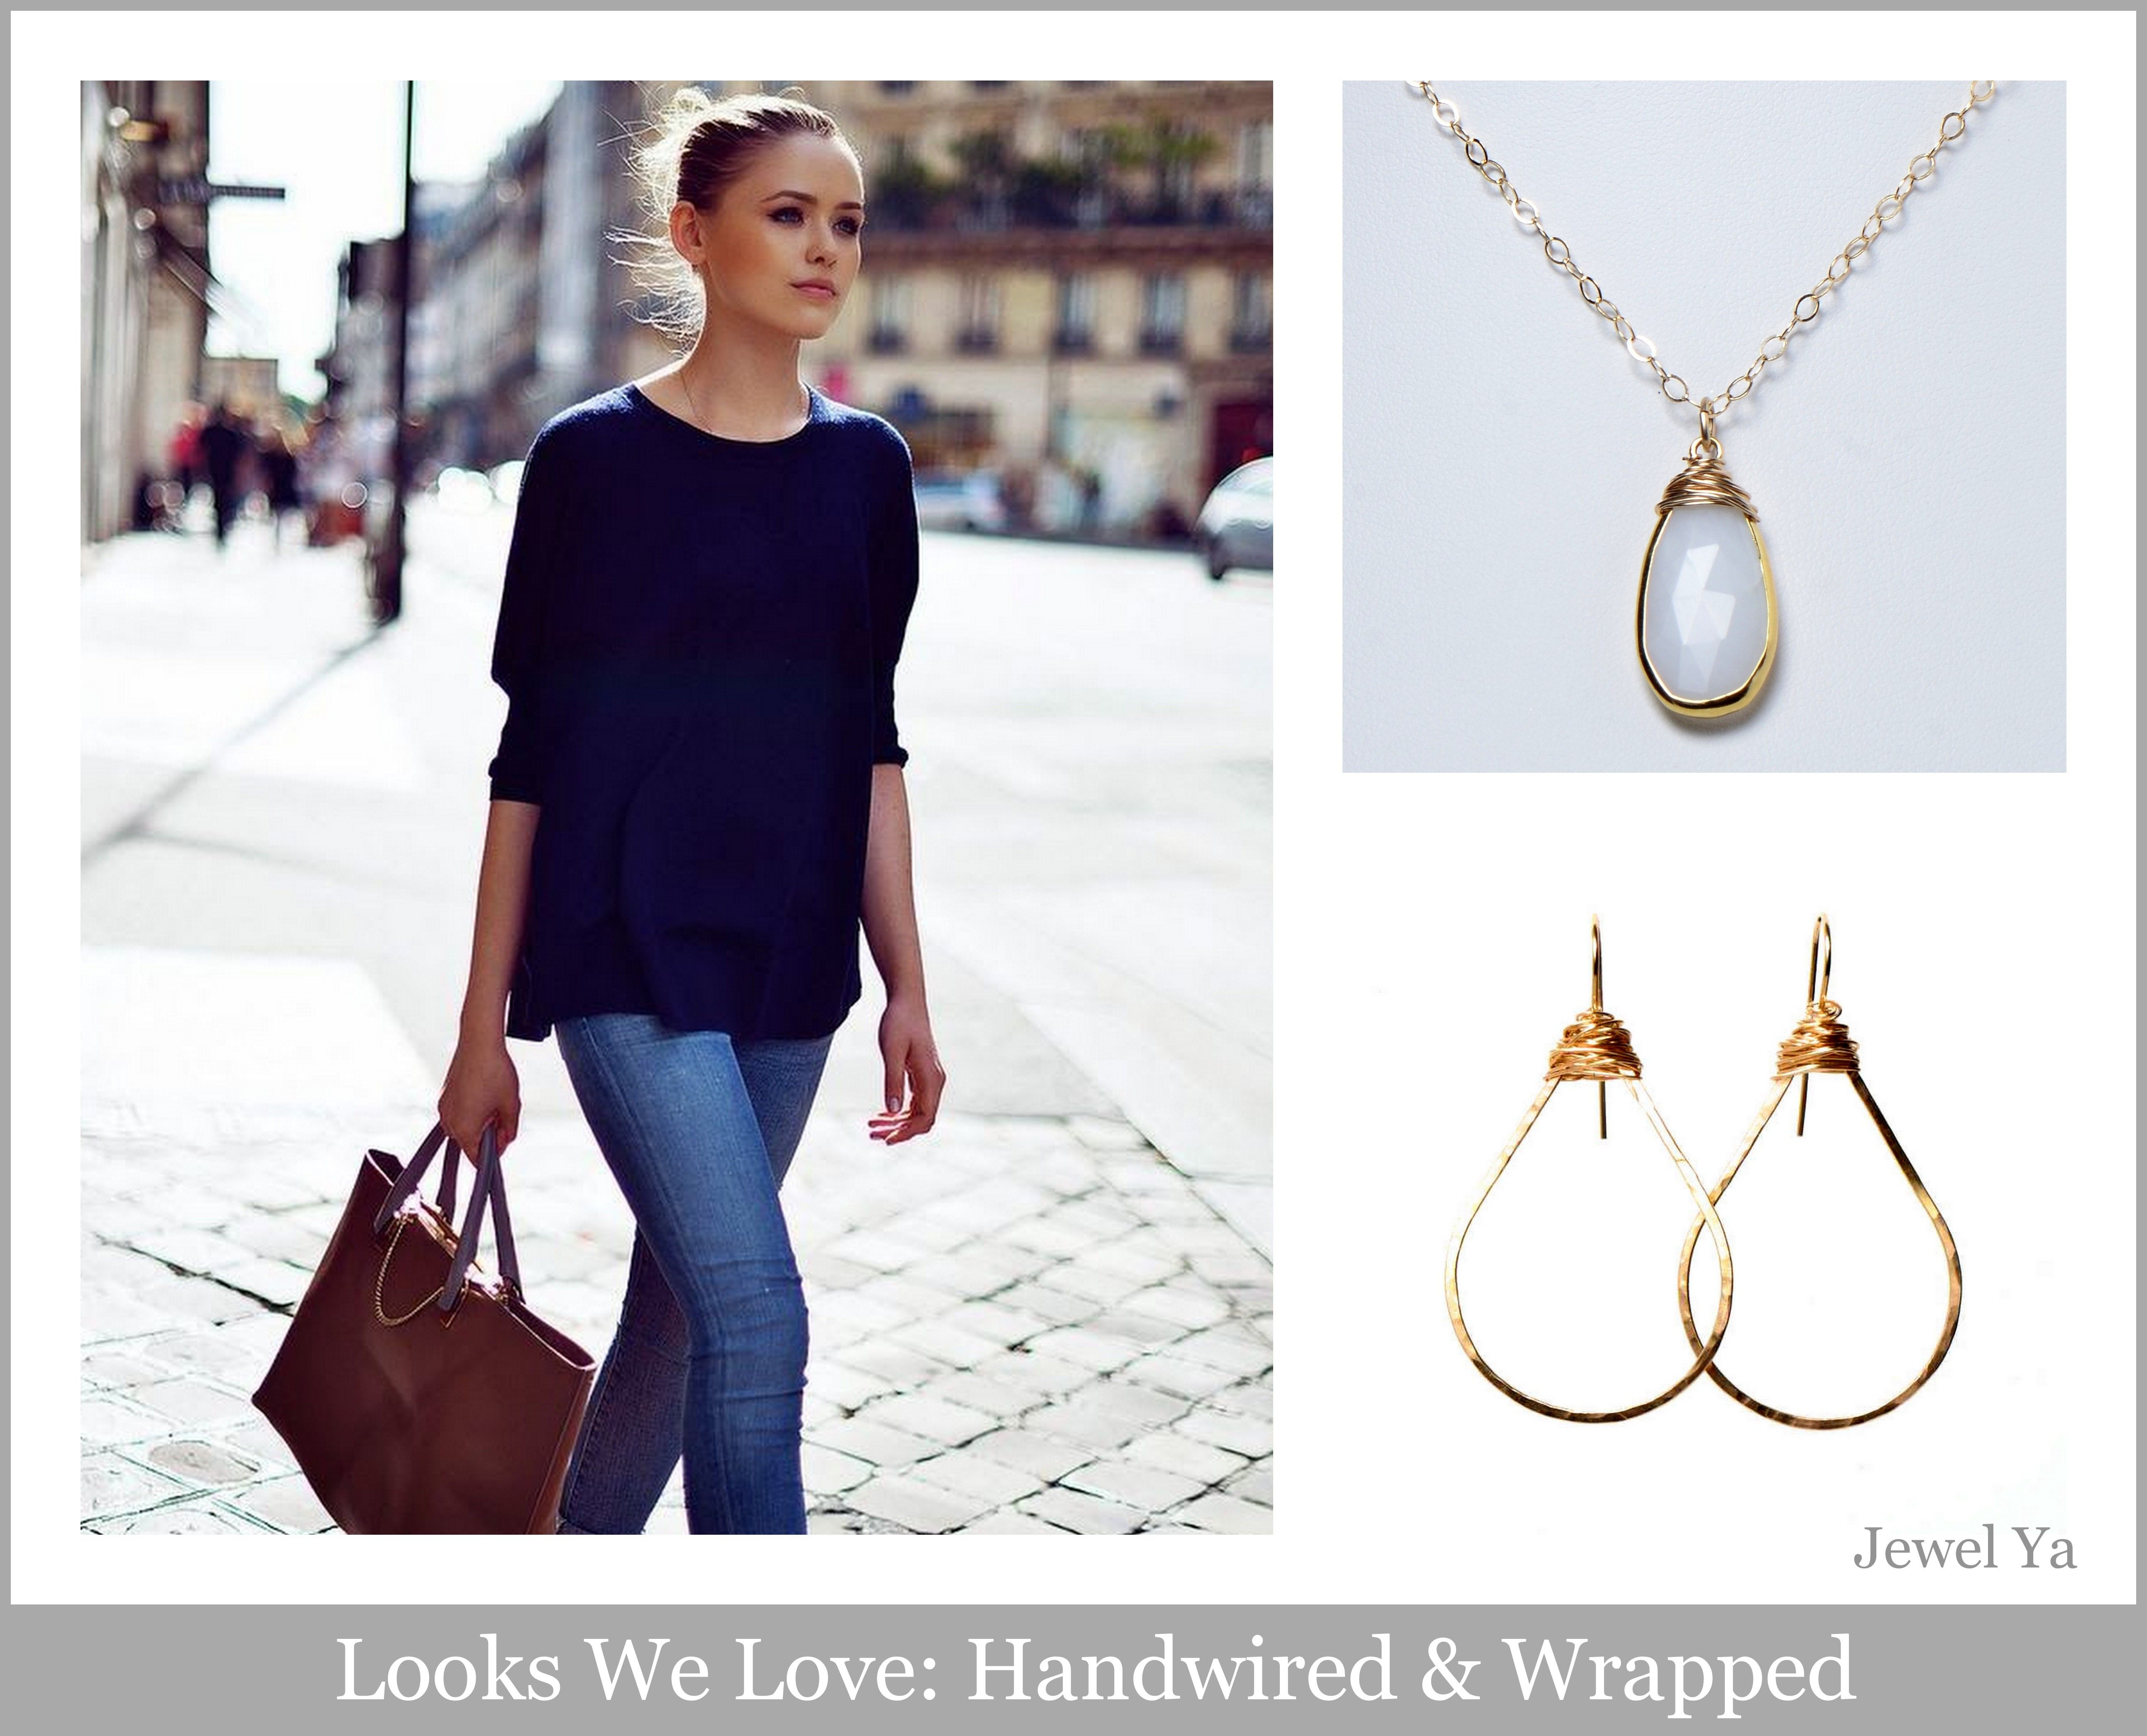 Loving our Jewel Ya heavy handwired & wrapped necklace paired with a simple, yet classic outfit